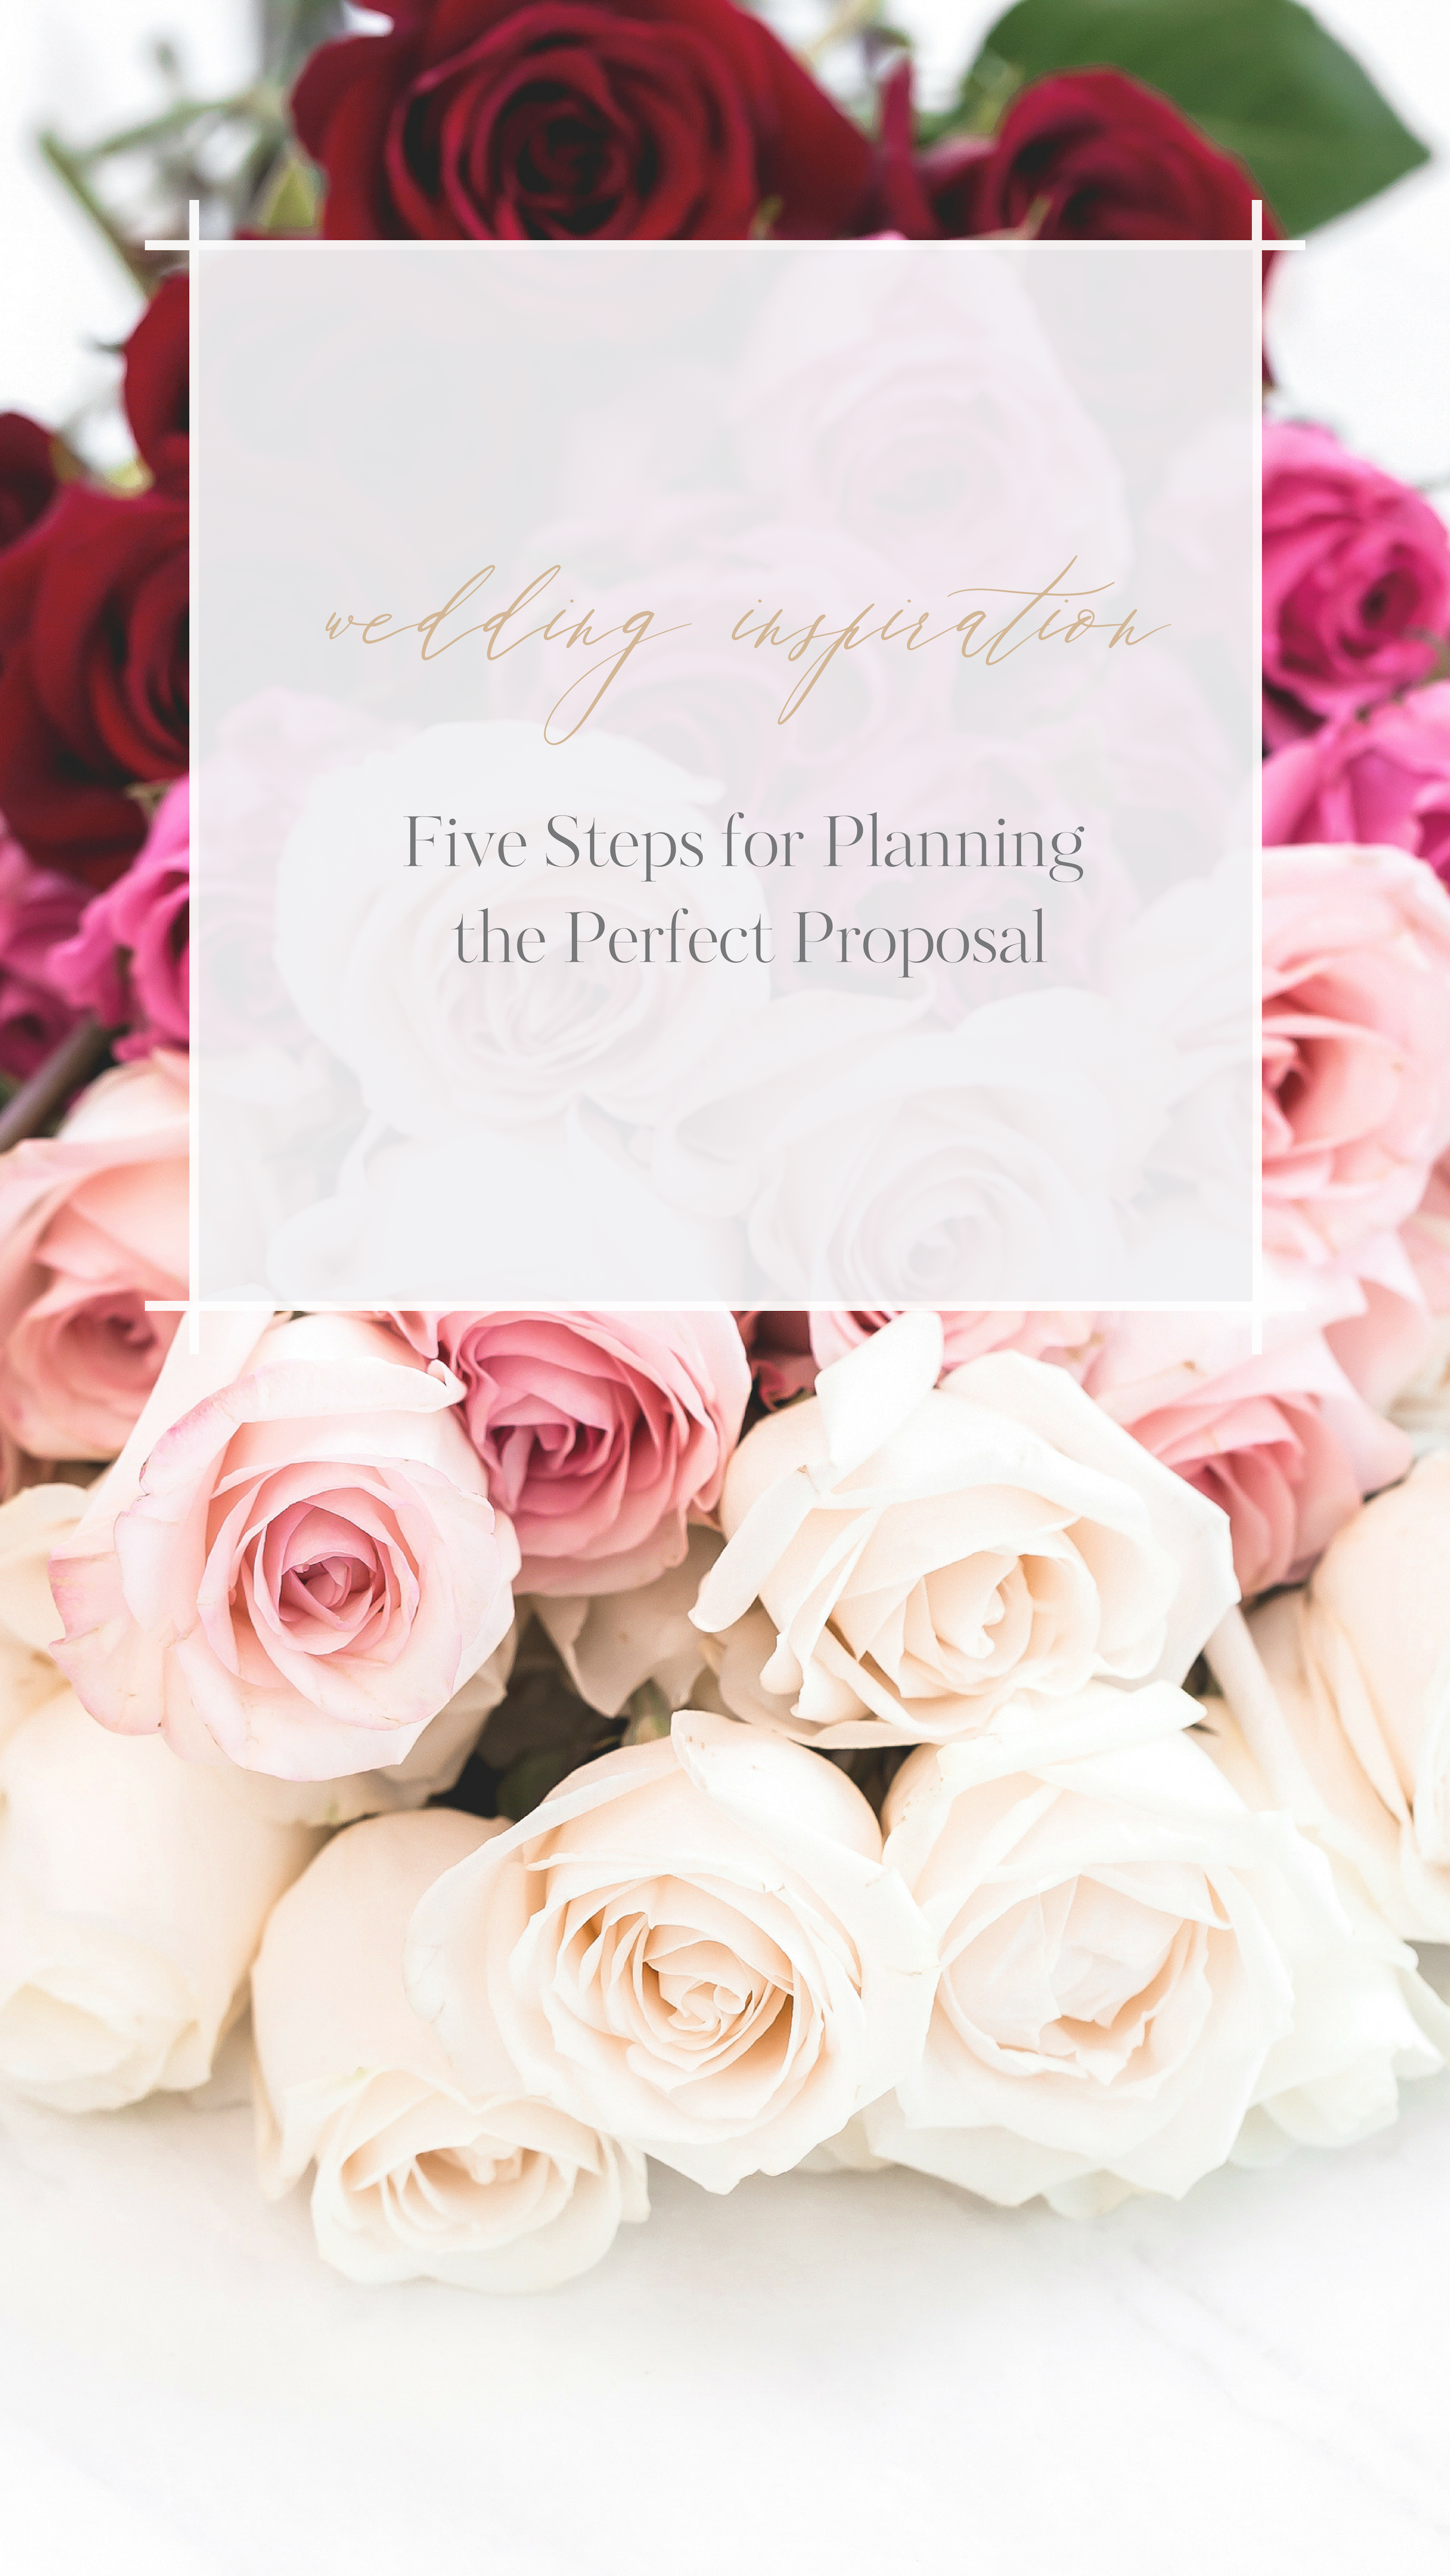 Five Steps for Planning the Perfect Proposal Calgary Wedding Planner YYC Wedding Planner Canmore Wedding Planner Banff Wedding Planner Lake Louise Wedding Planner